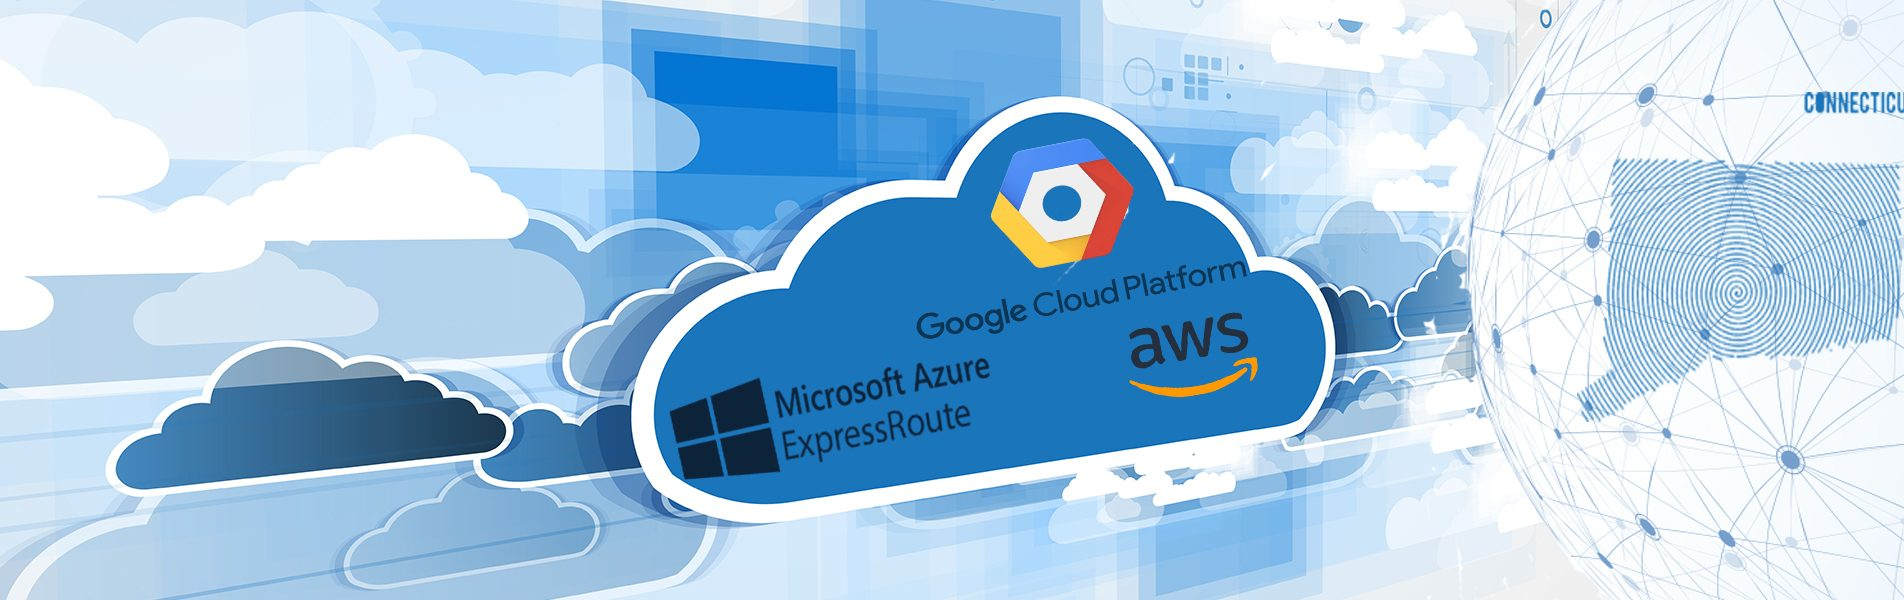 Cloud connect graphic, image of a cloud with Google Cloud Platform logo, Microsoft Azure ExpressRoute logo, and AWS logo